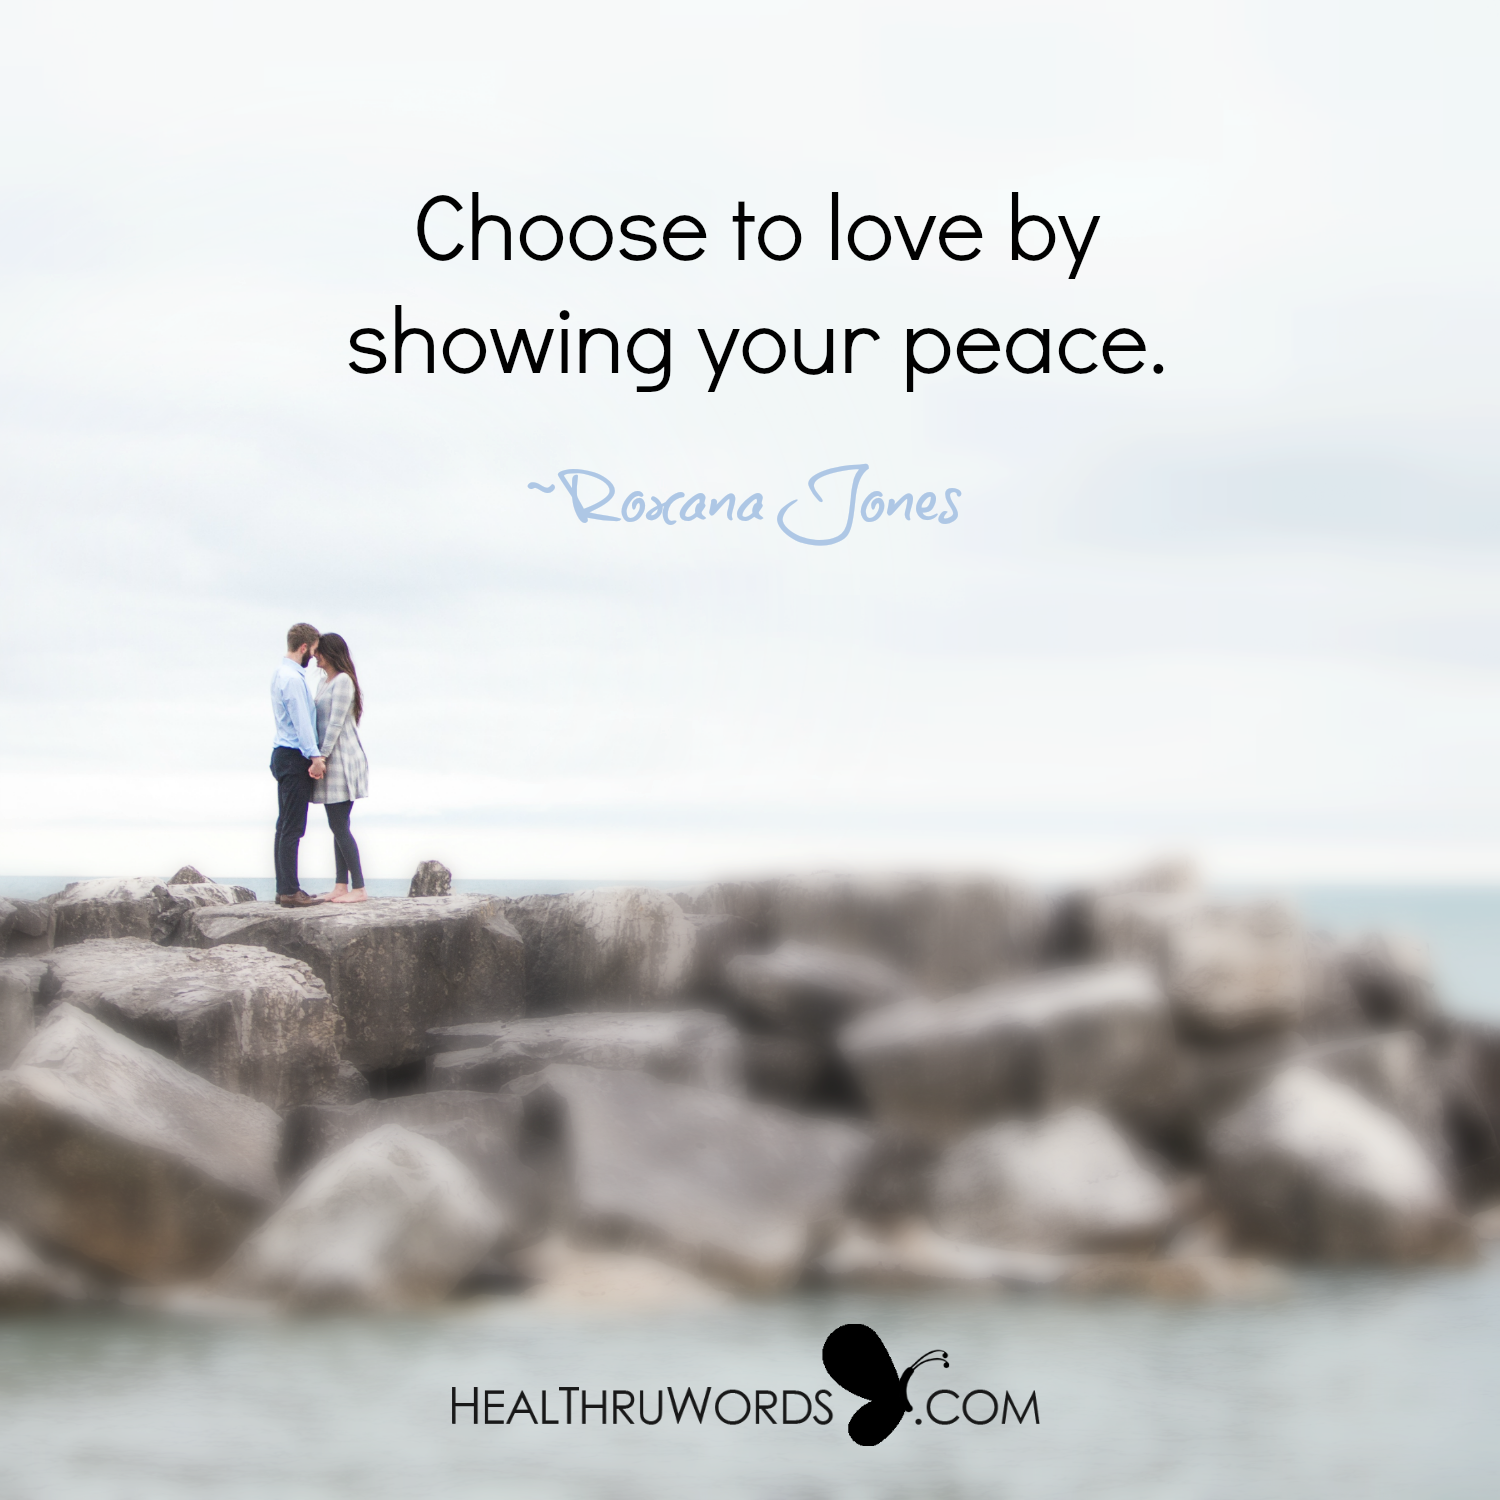 Inspirational Image: Peaceful Love